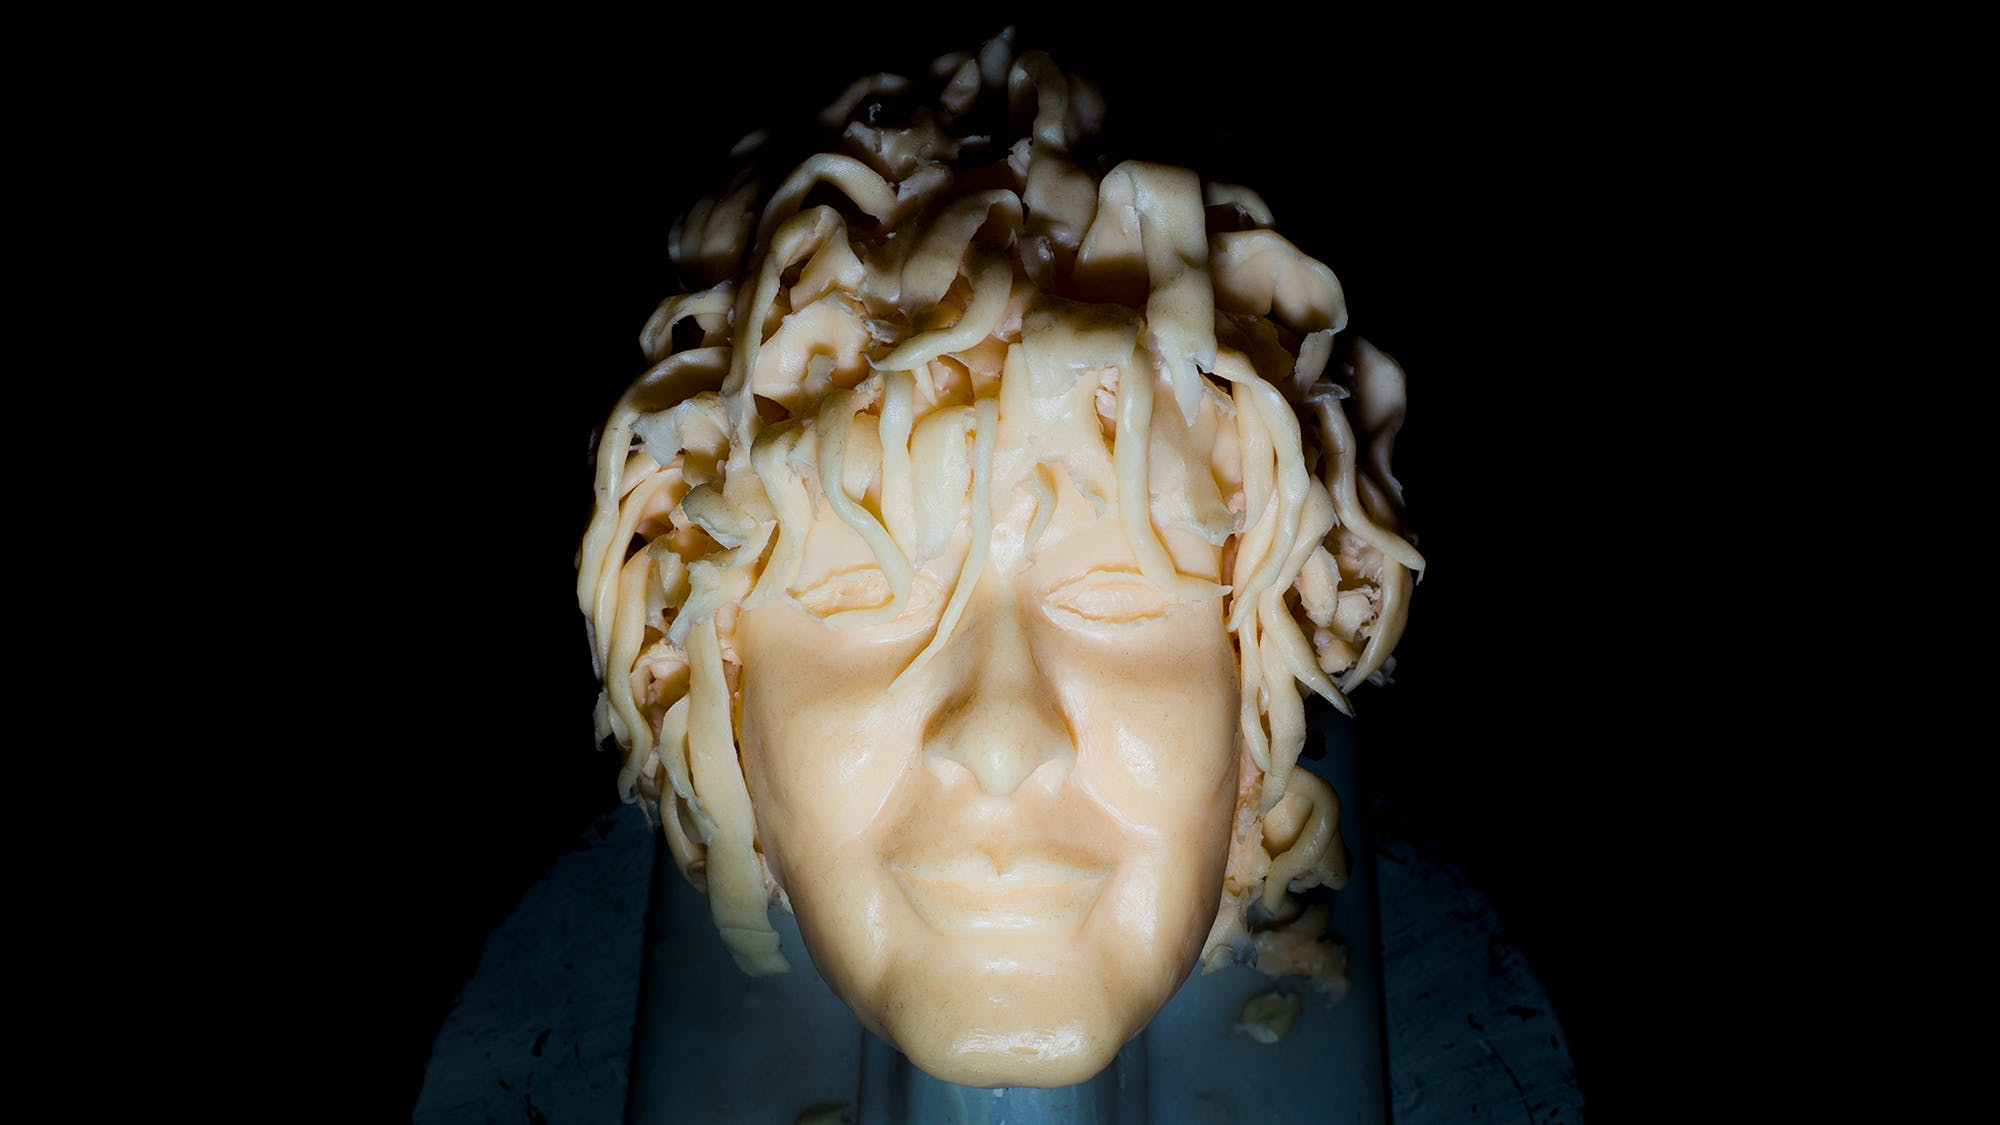 A wax head made by Carlos, a former student of the American Academy McAllister Institute of Funeral Service.